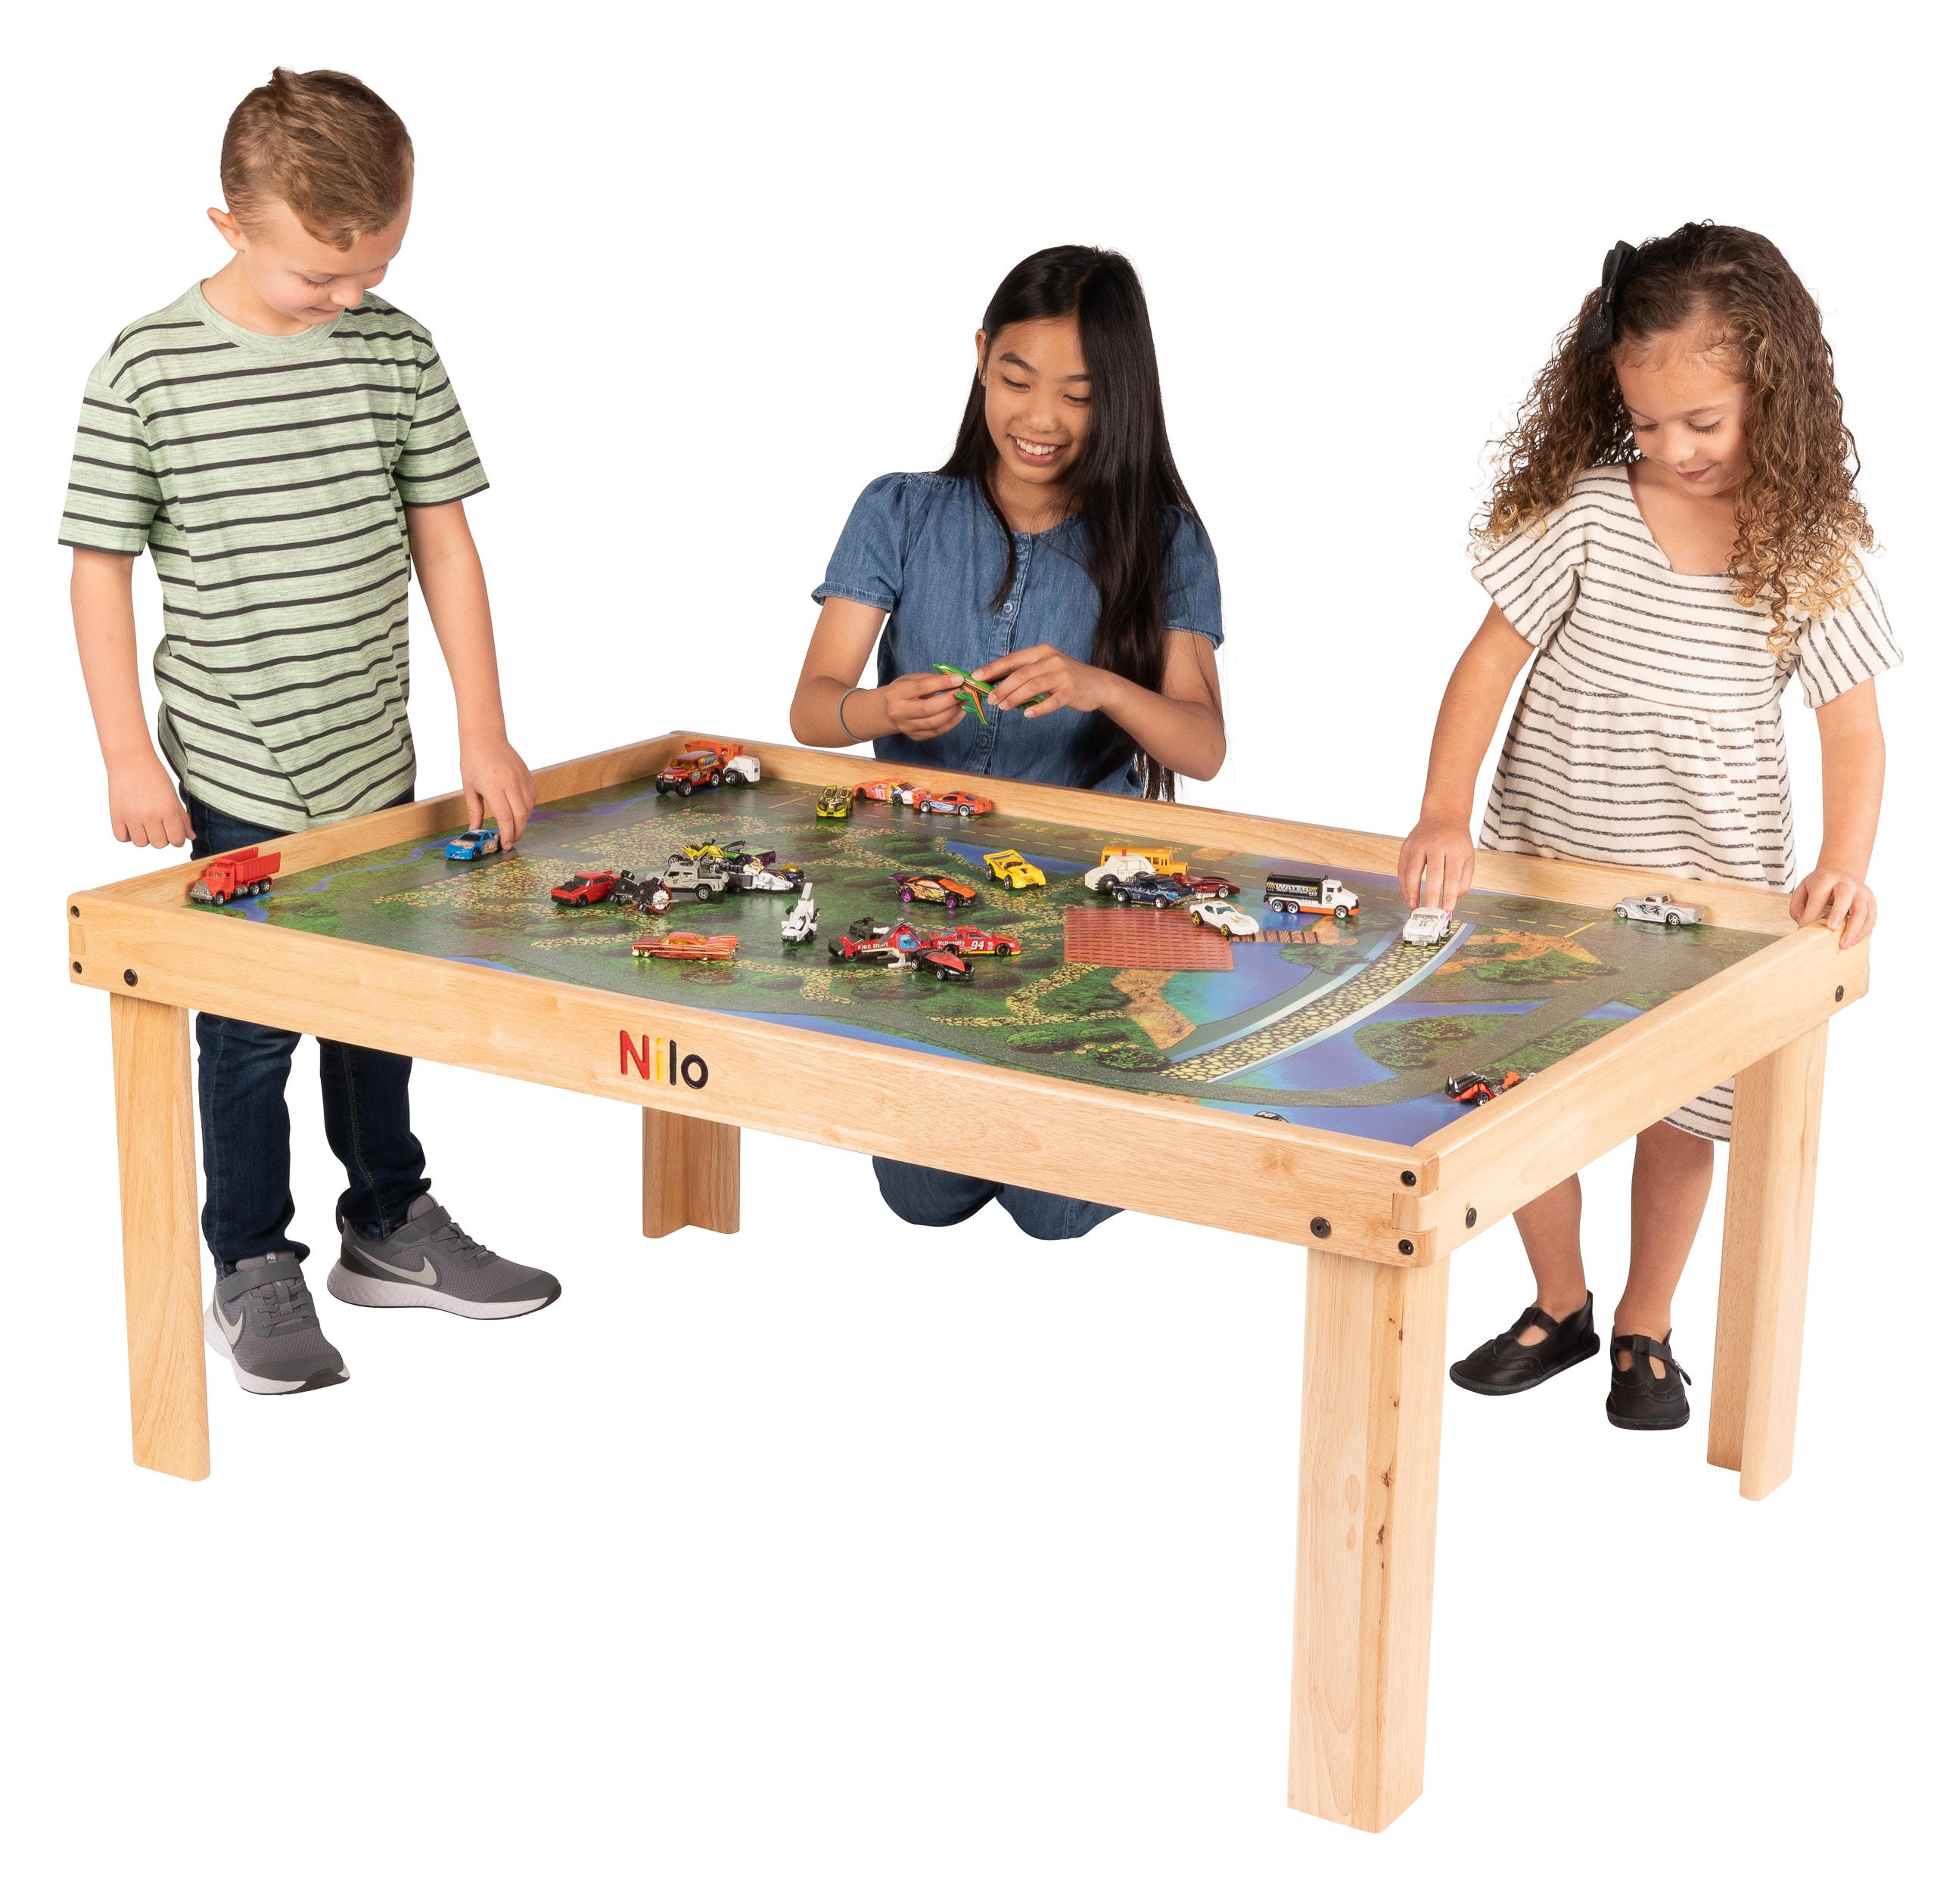 Kids playing with toy cars on the Nilo Large Childrens play table & Nilo Graphic mat.